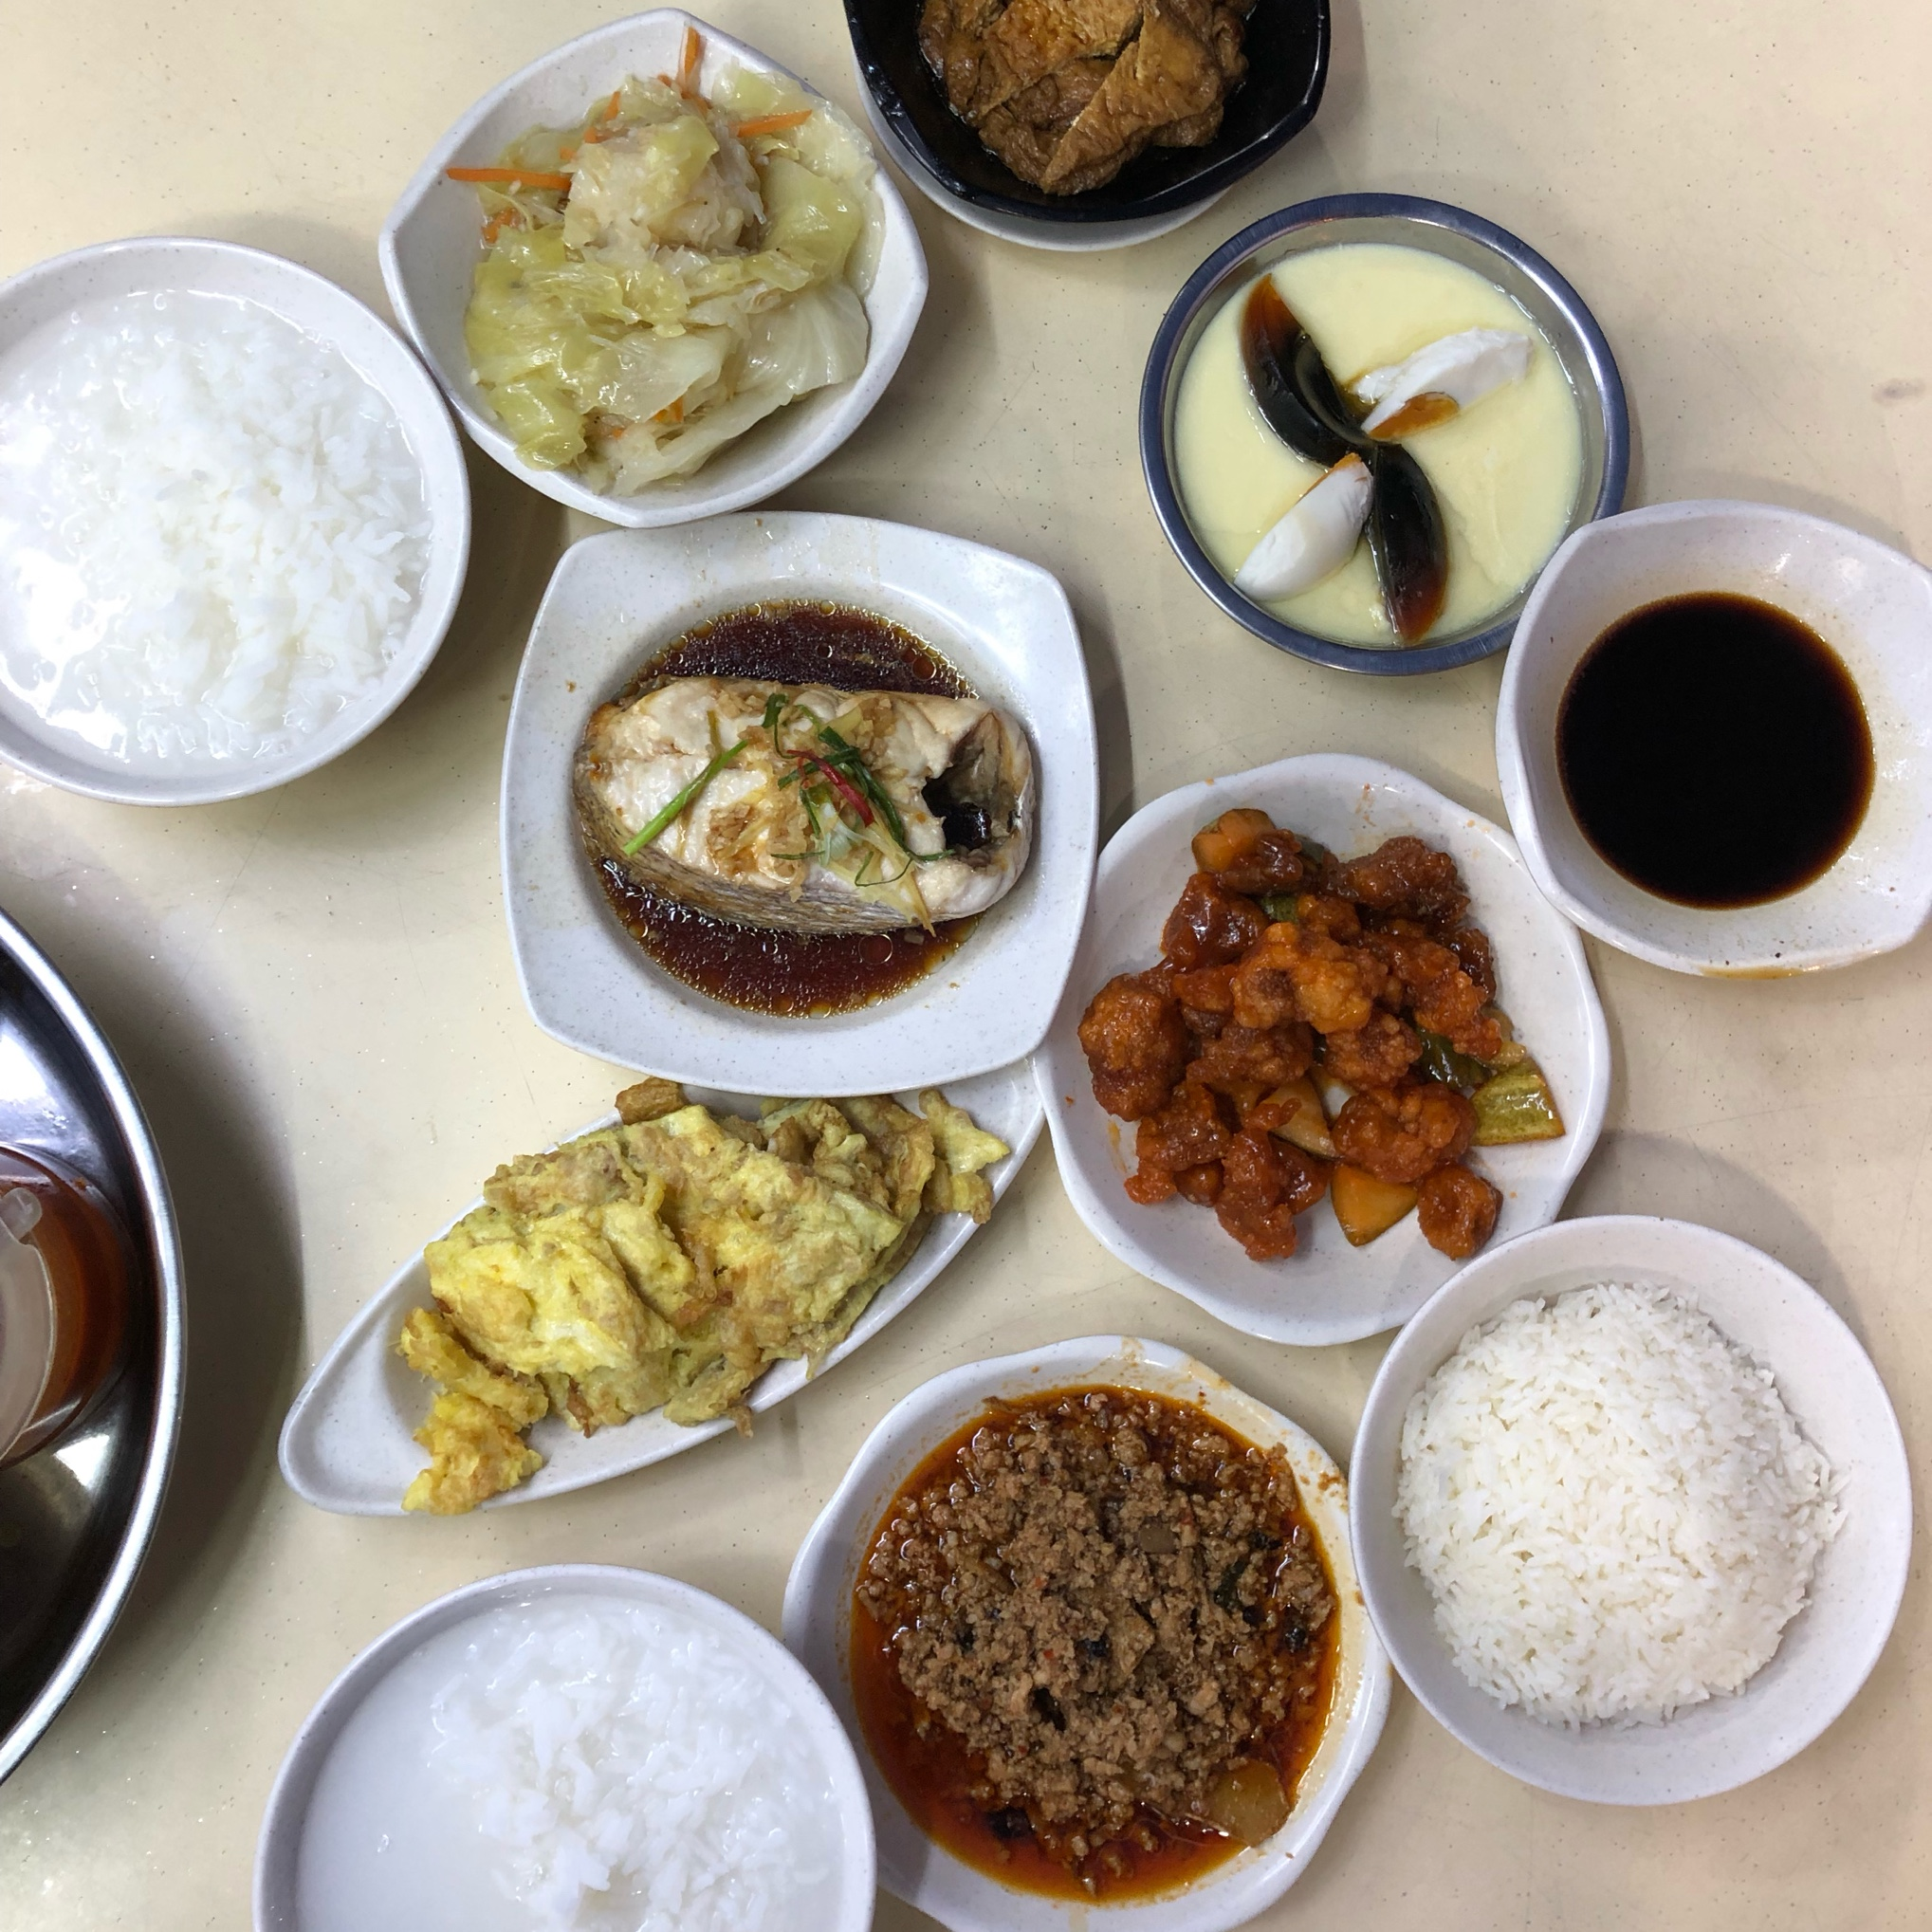 Asian Food in Singapore